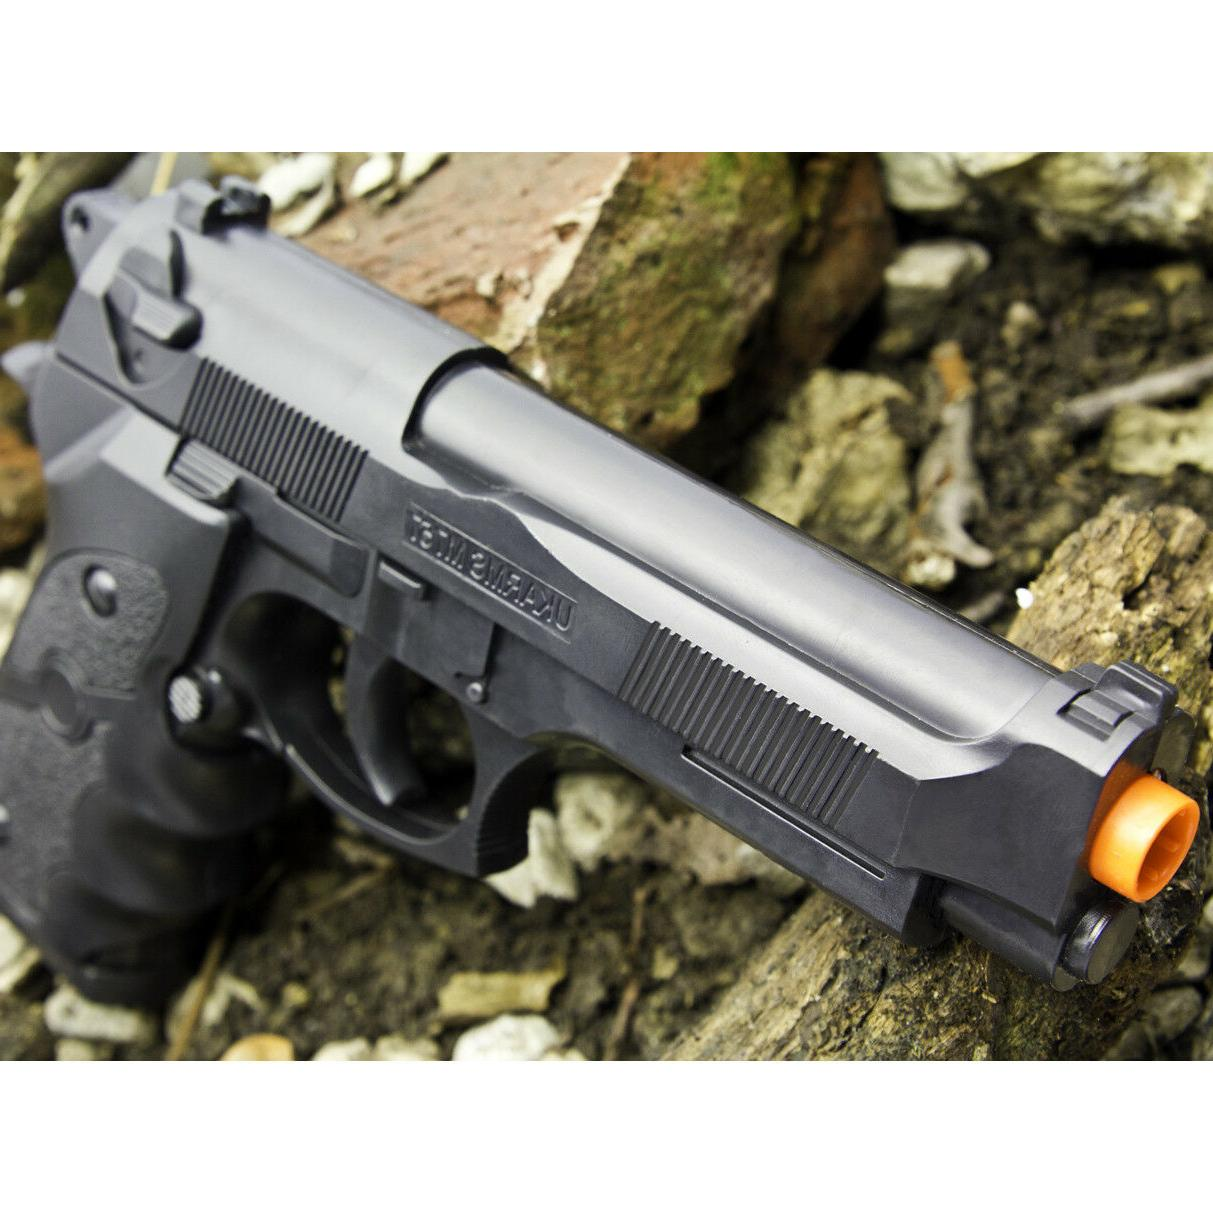 UKARMS M9 BERETTA SIZE SPRING AIRSOFT HAND w/ BBs